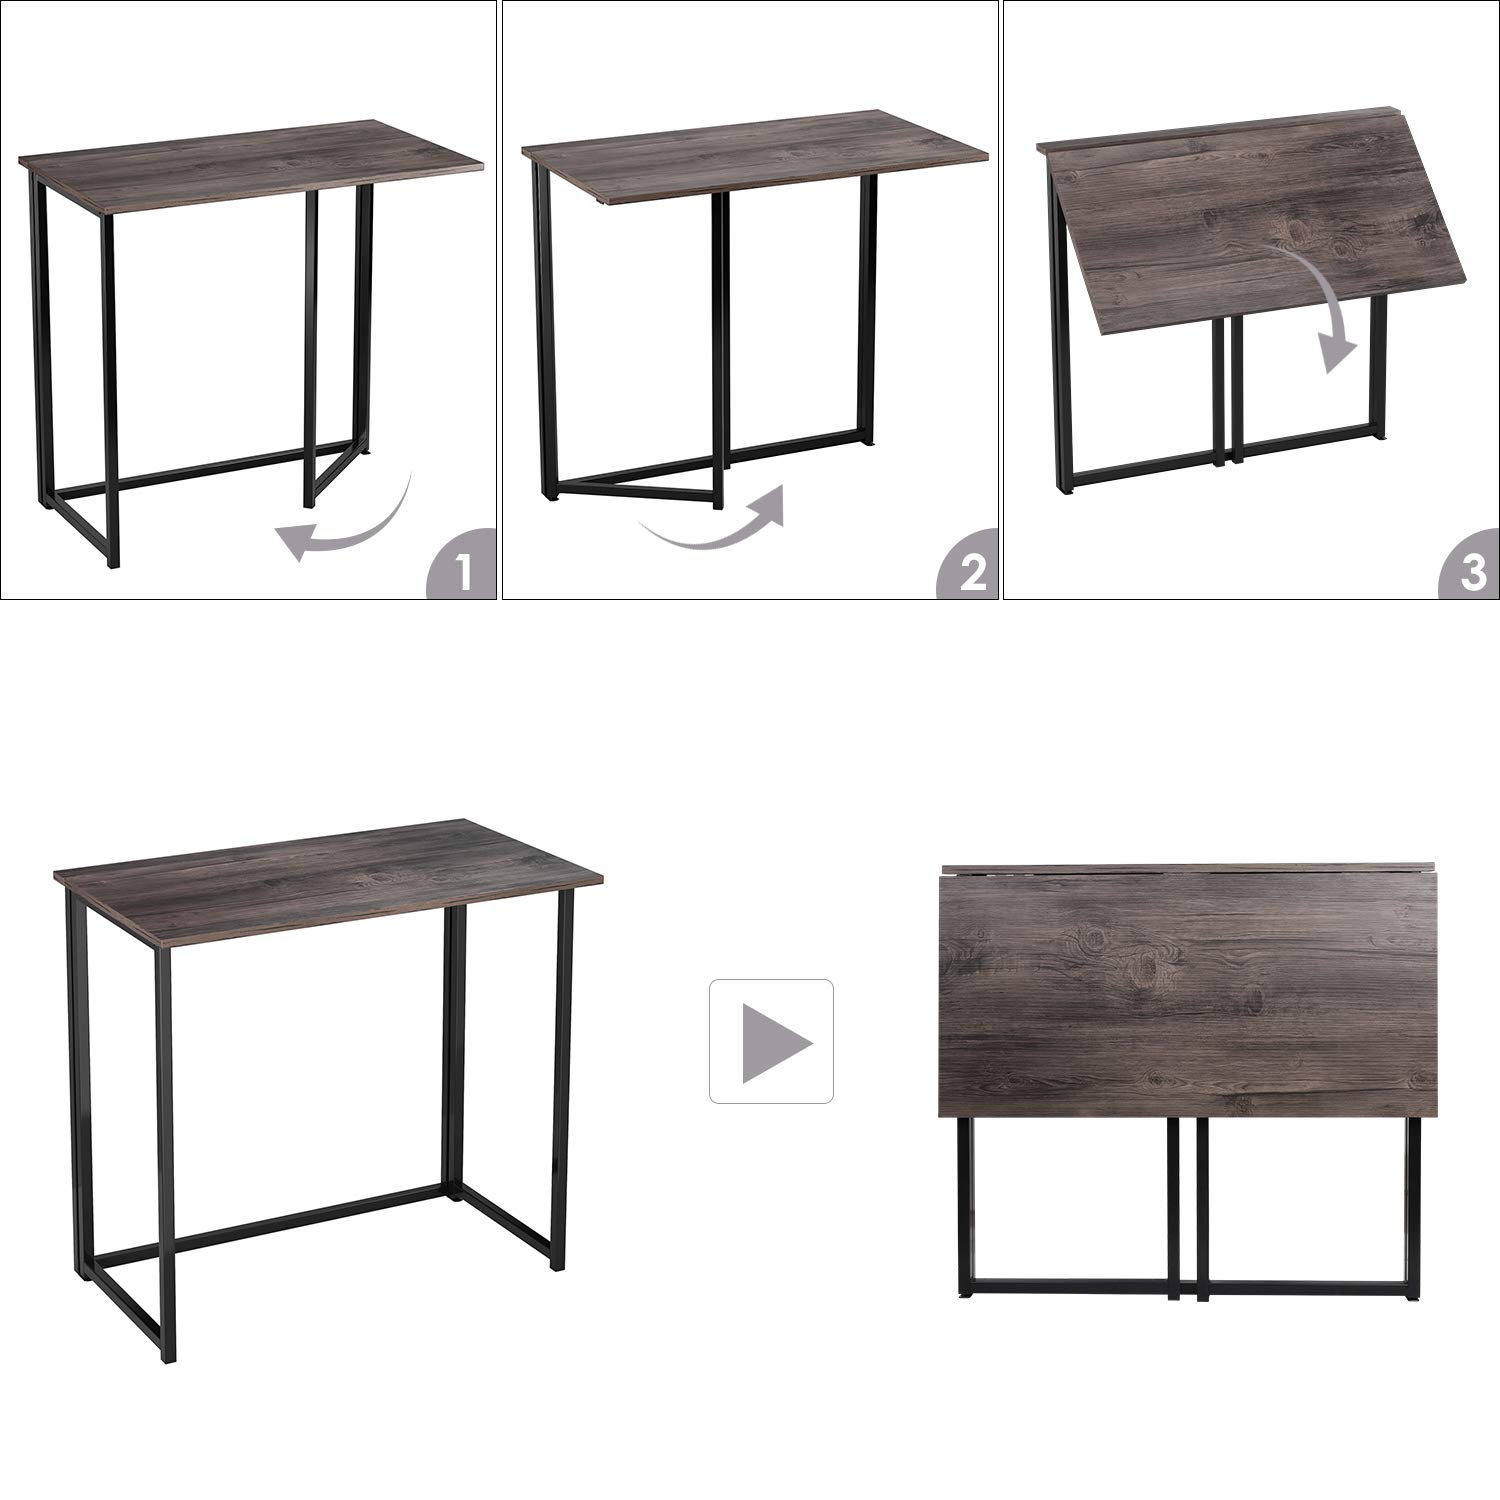 HOMFA Folding Laptop Table, Writing Computer Notebook Desk, Modern Simple Industrial Style TV Tray Bed/Sofa Side Study Table, Space Saving Furniture for Home Office by Homfa (Image #4)